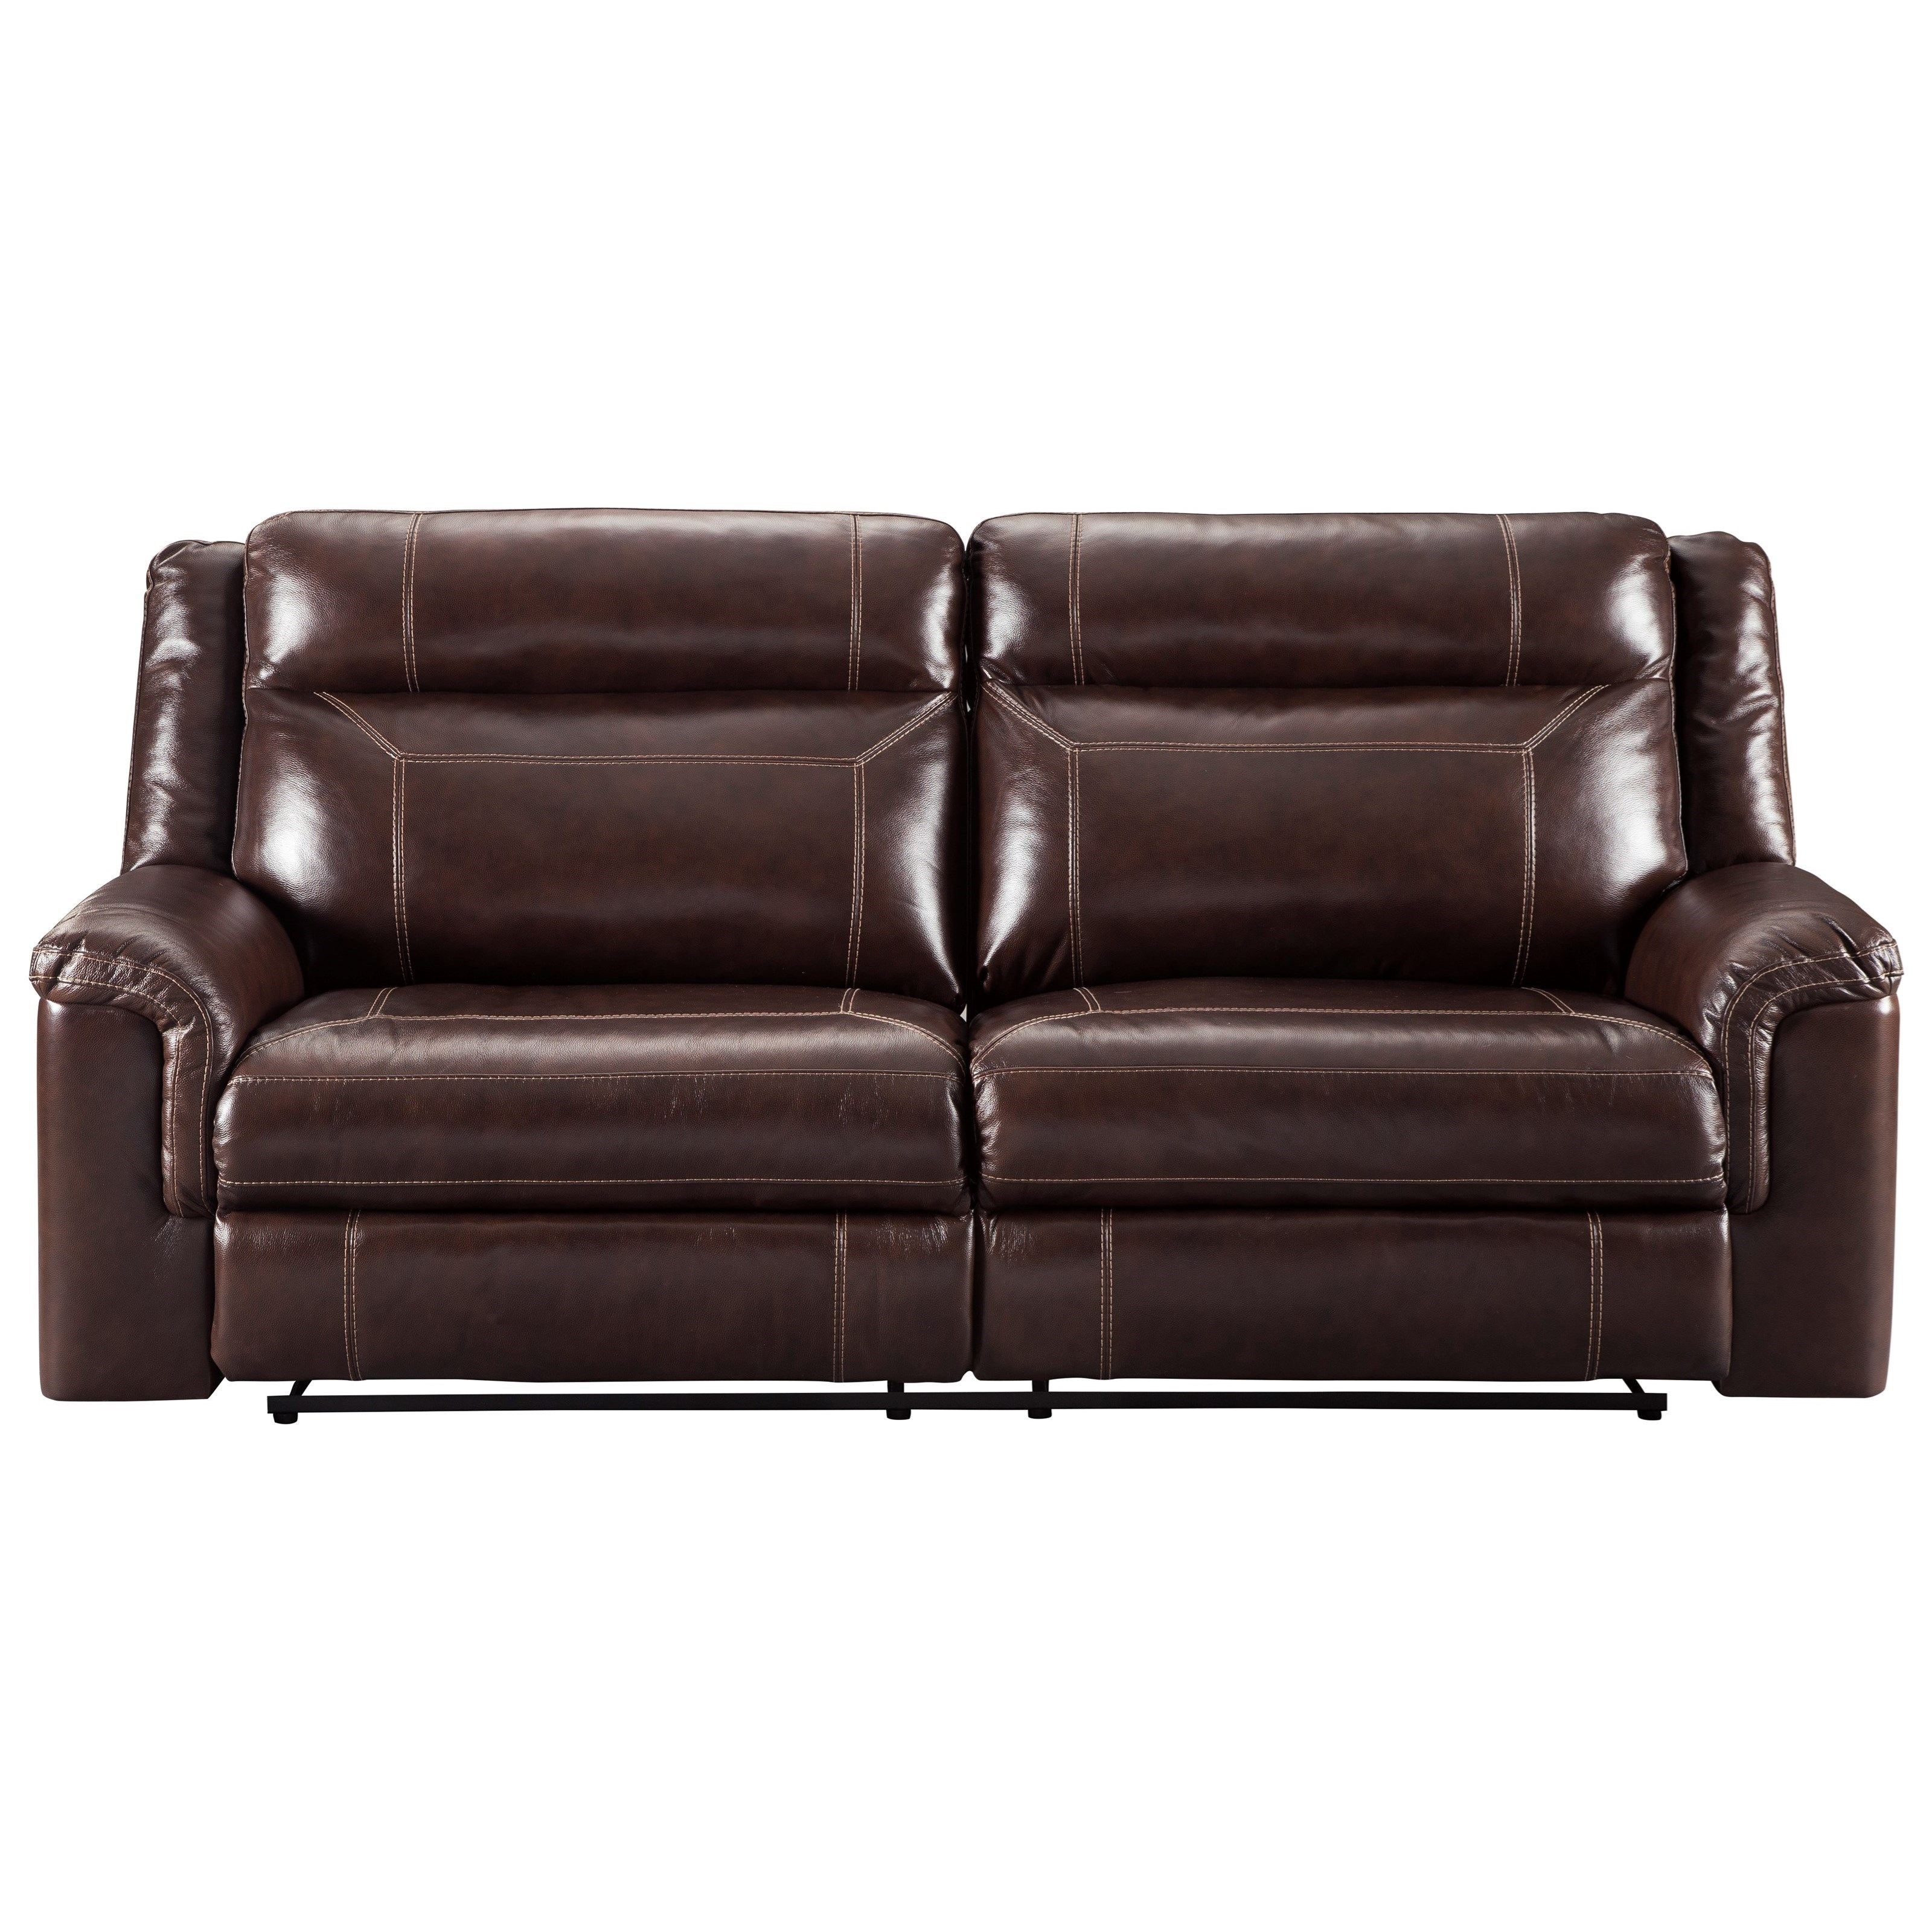 ashley power recliner sofa. Signature Design By Ashley WylinePower Reclining Sofa W/ Adjustable Headrest Power Recliner H